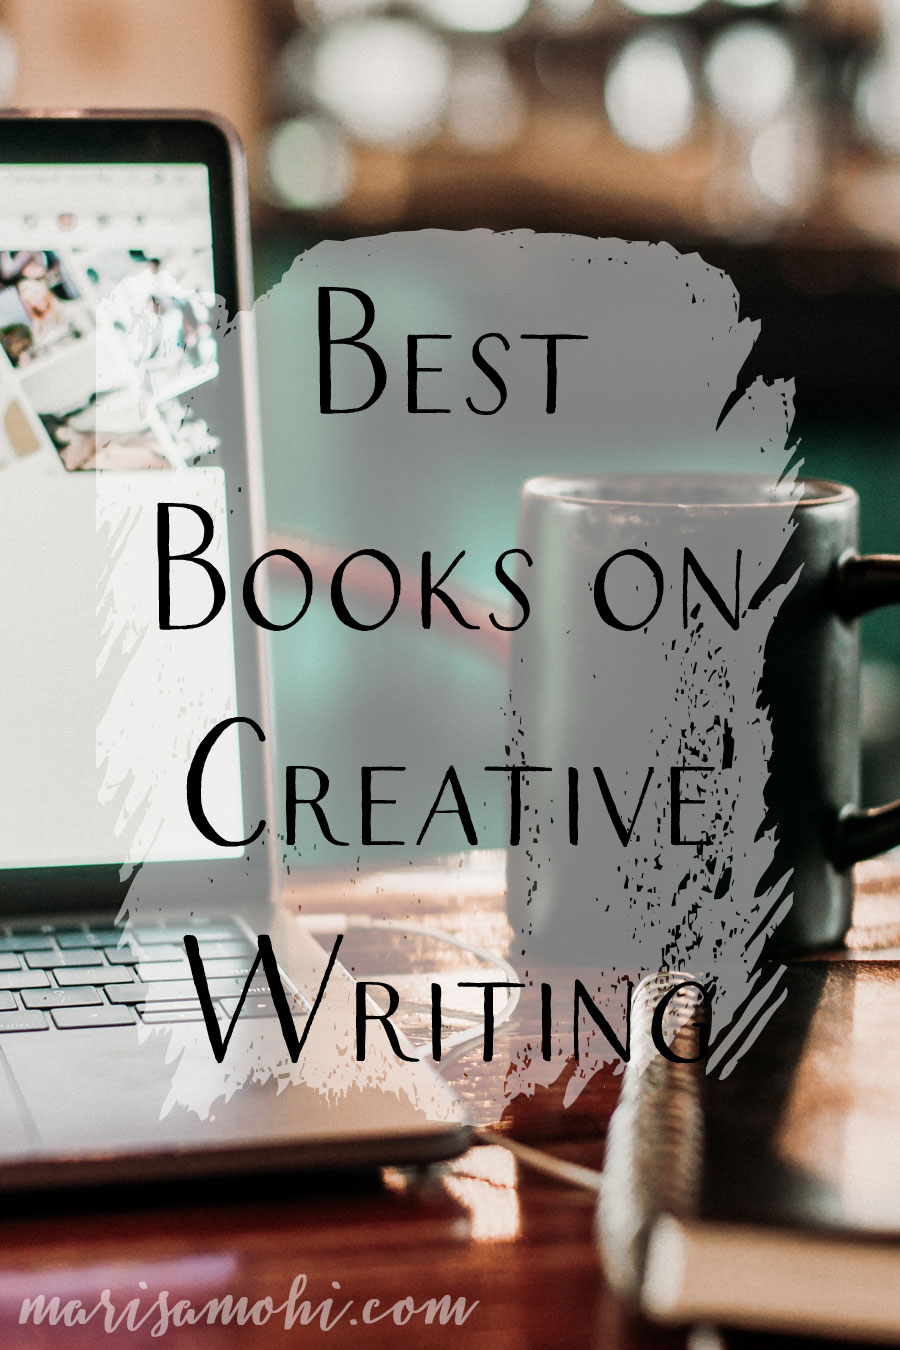 Best Books on Creative Writing | The best books on creative writing focus on story structure and living life as a writer.